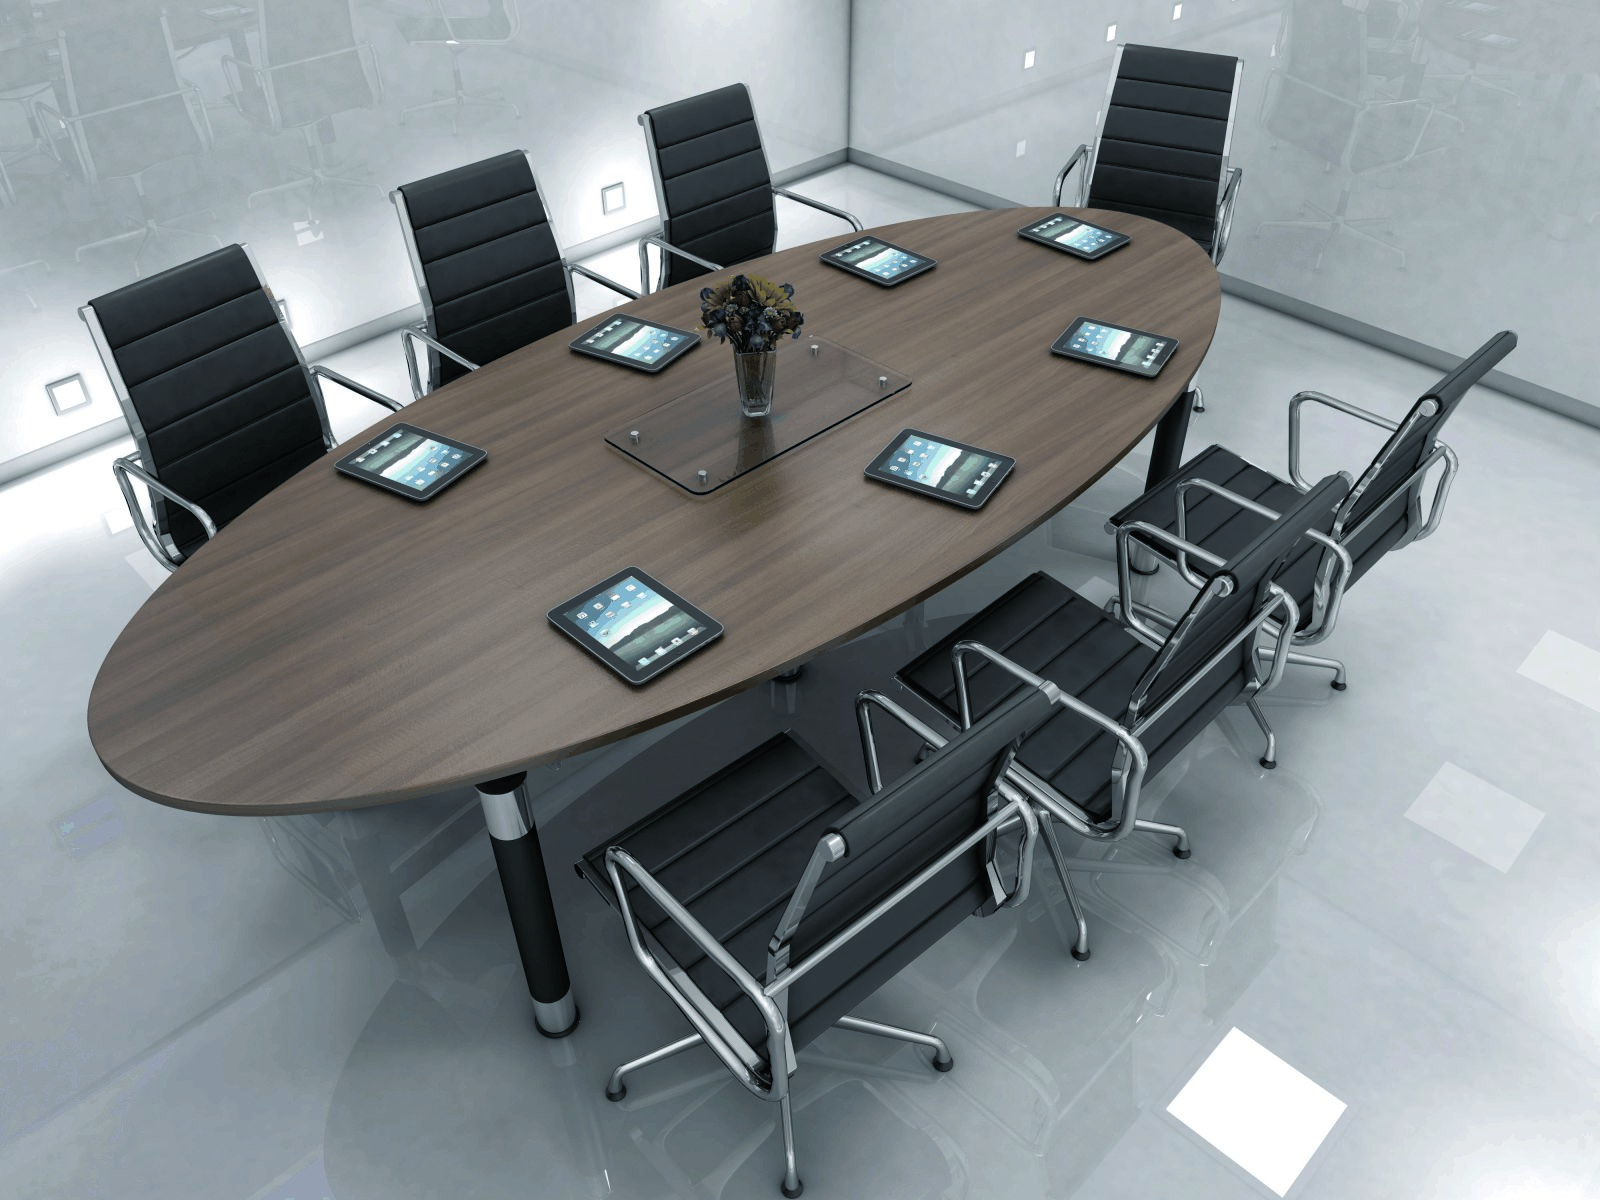 conference room table ideas. oval meeting desk. round table conference room ideas e